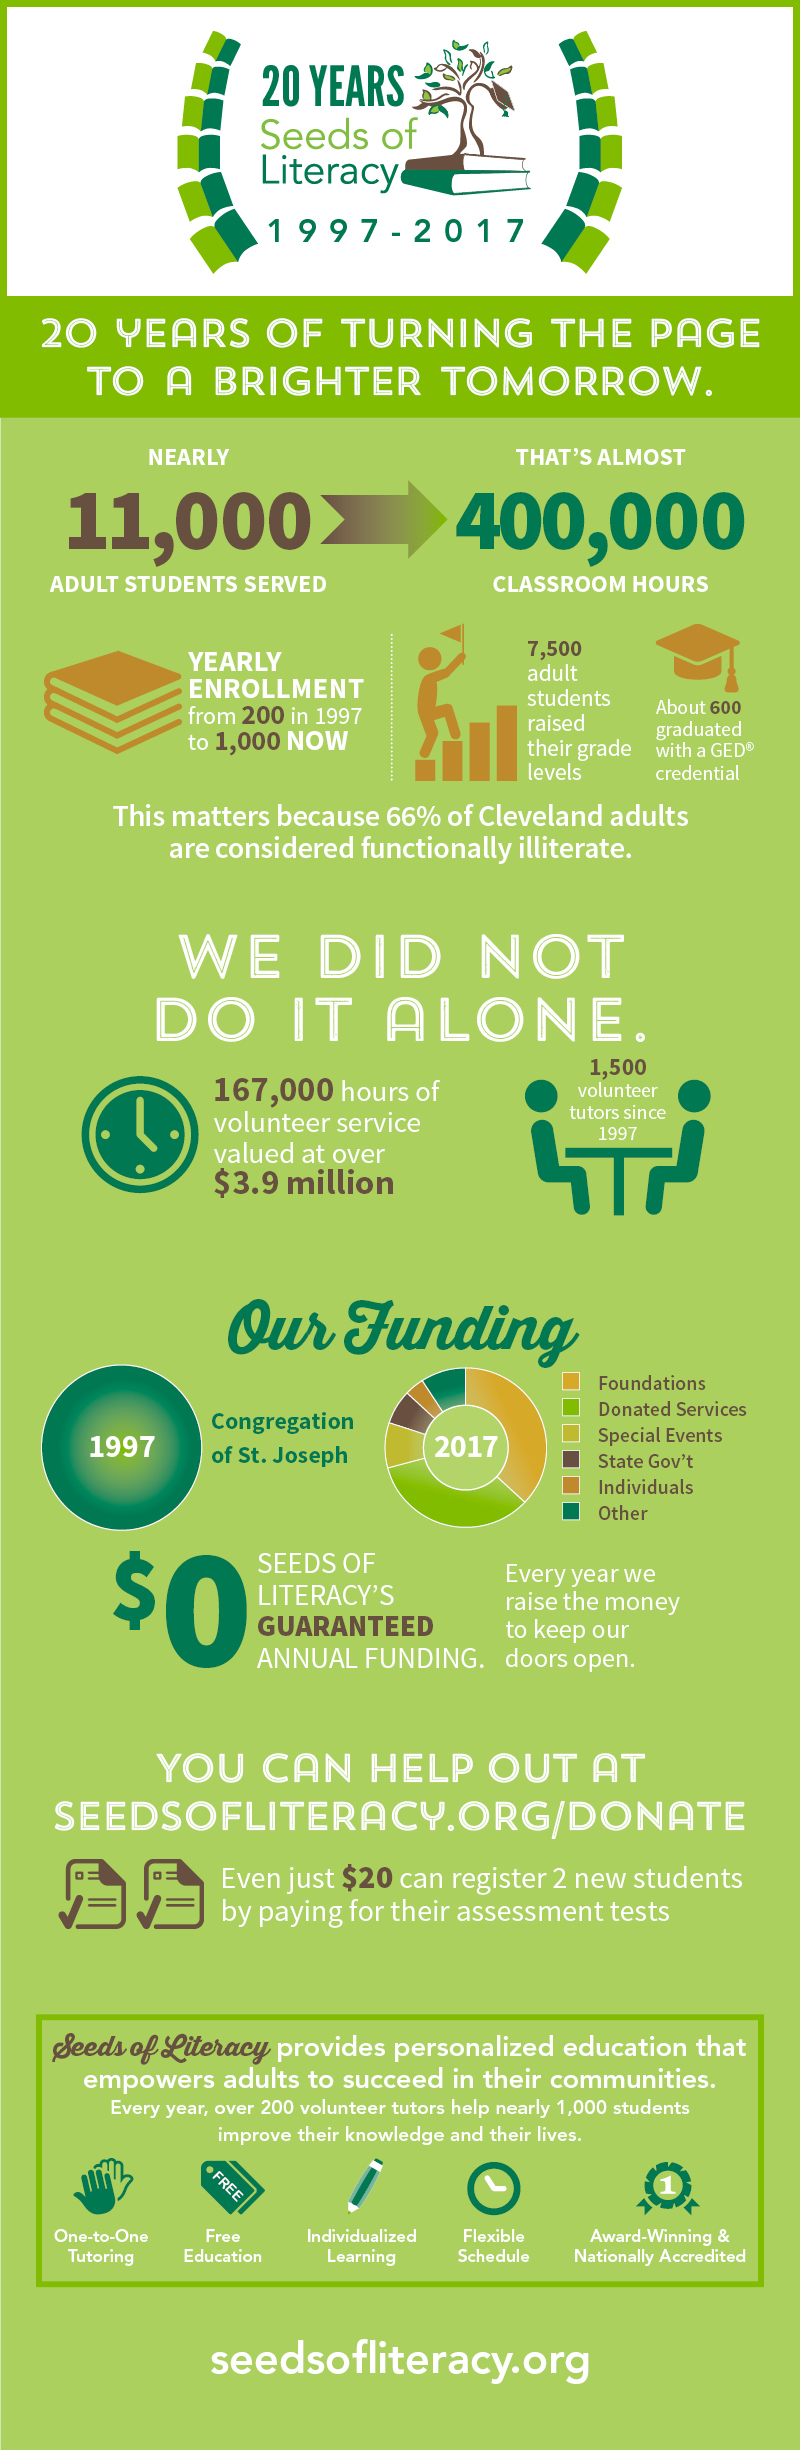 Seeds of Literacy's impact over 20 years